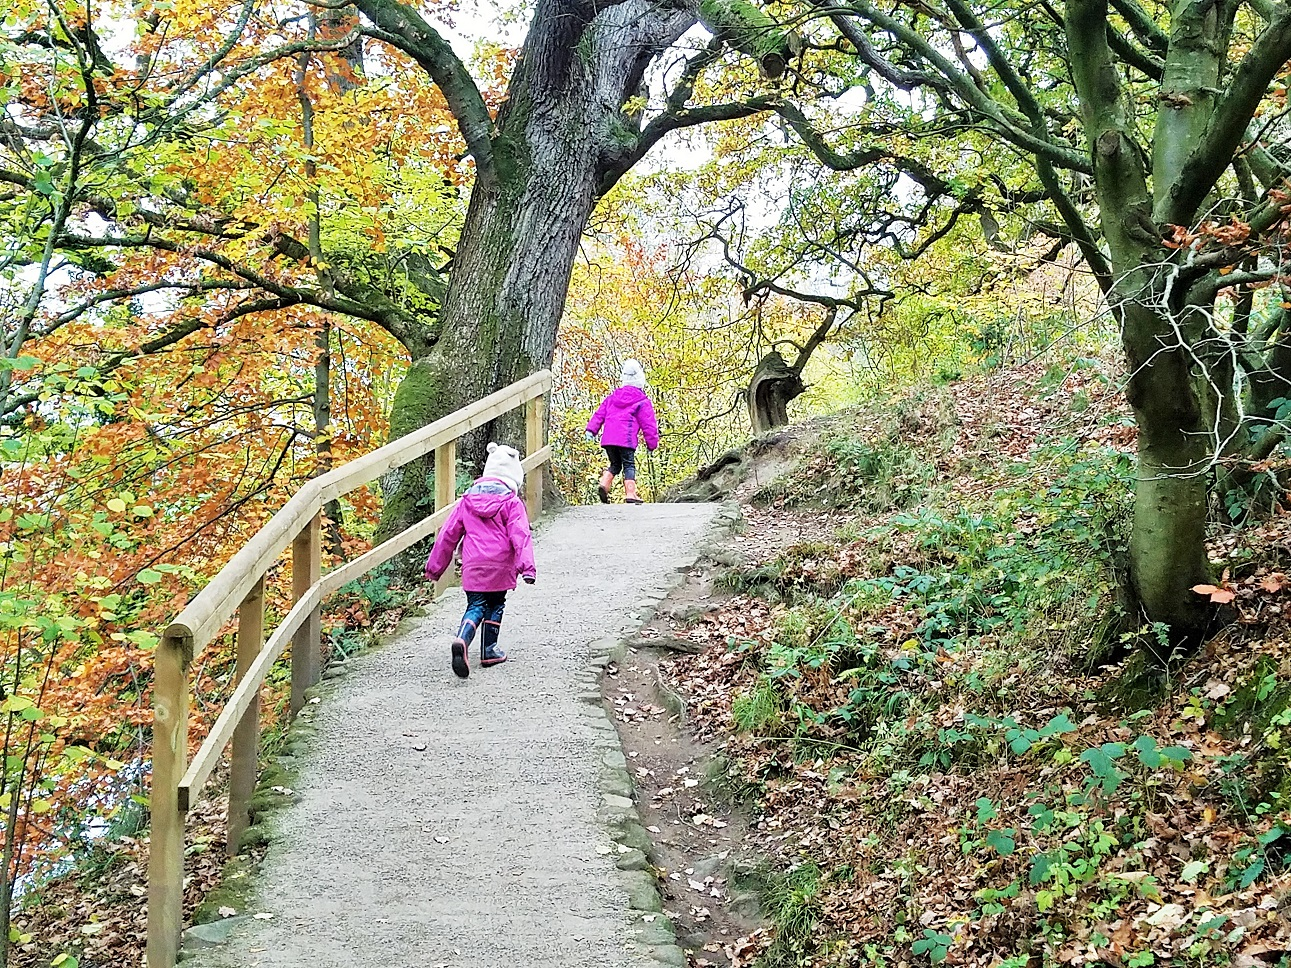 7 tips for using rewards and praise effectively - children walking in an autumn forest